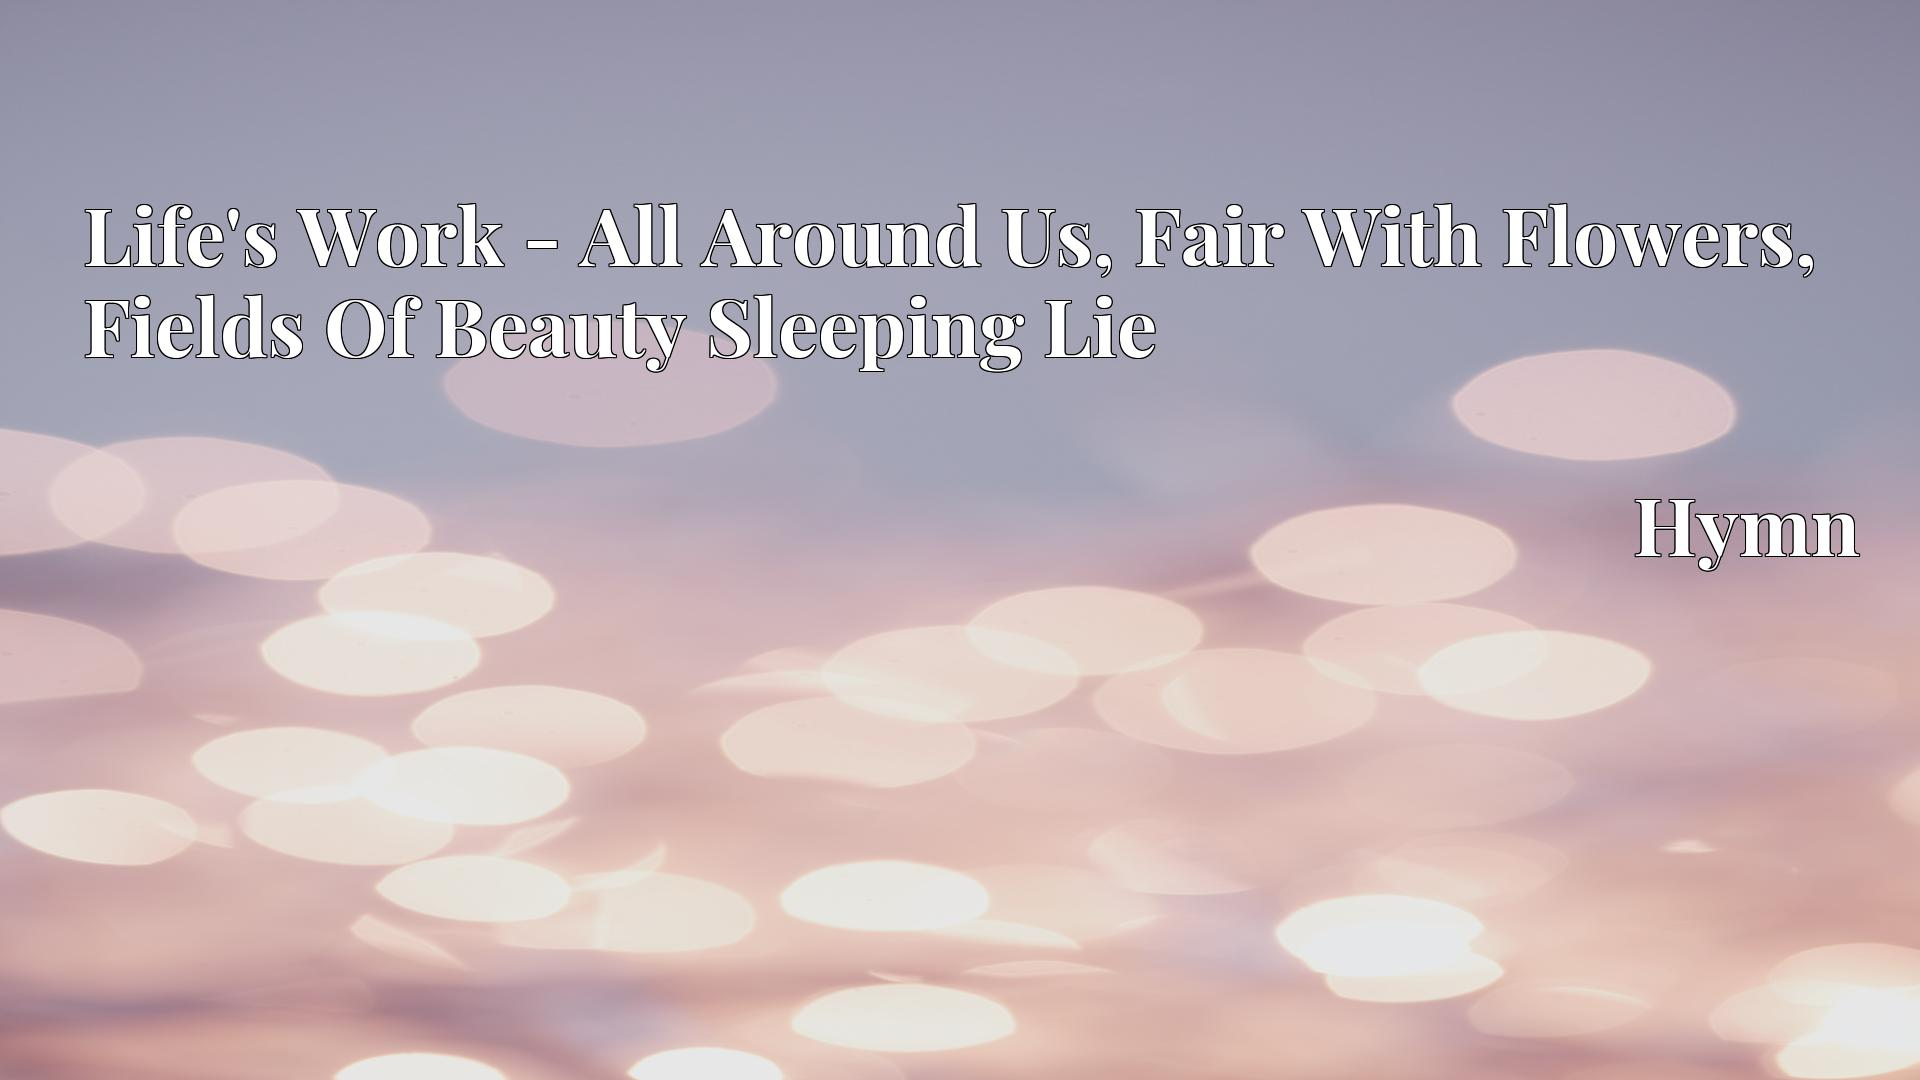 Life's Work - All Around Us, Fair With Flowers, Fields Of Beauty Sleeping Lie - Hymn